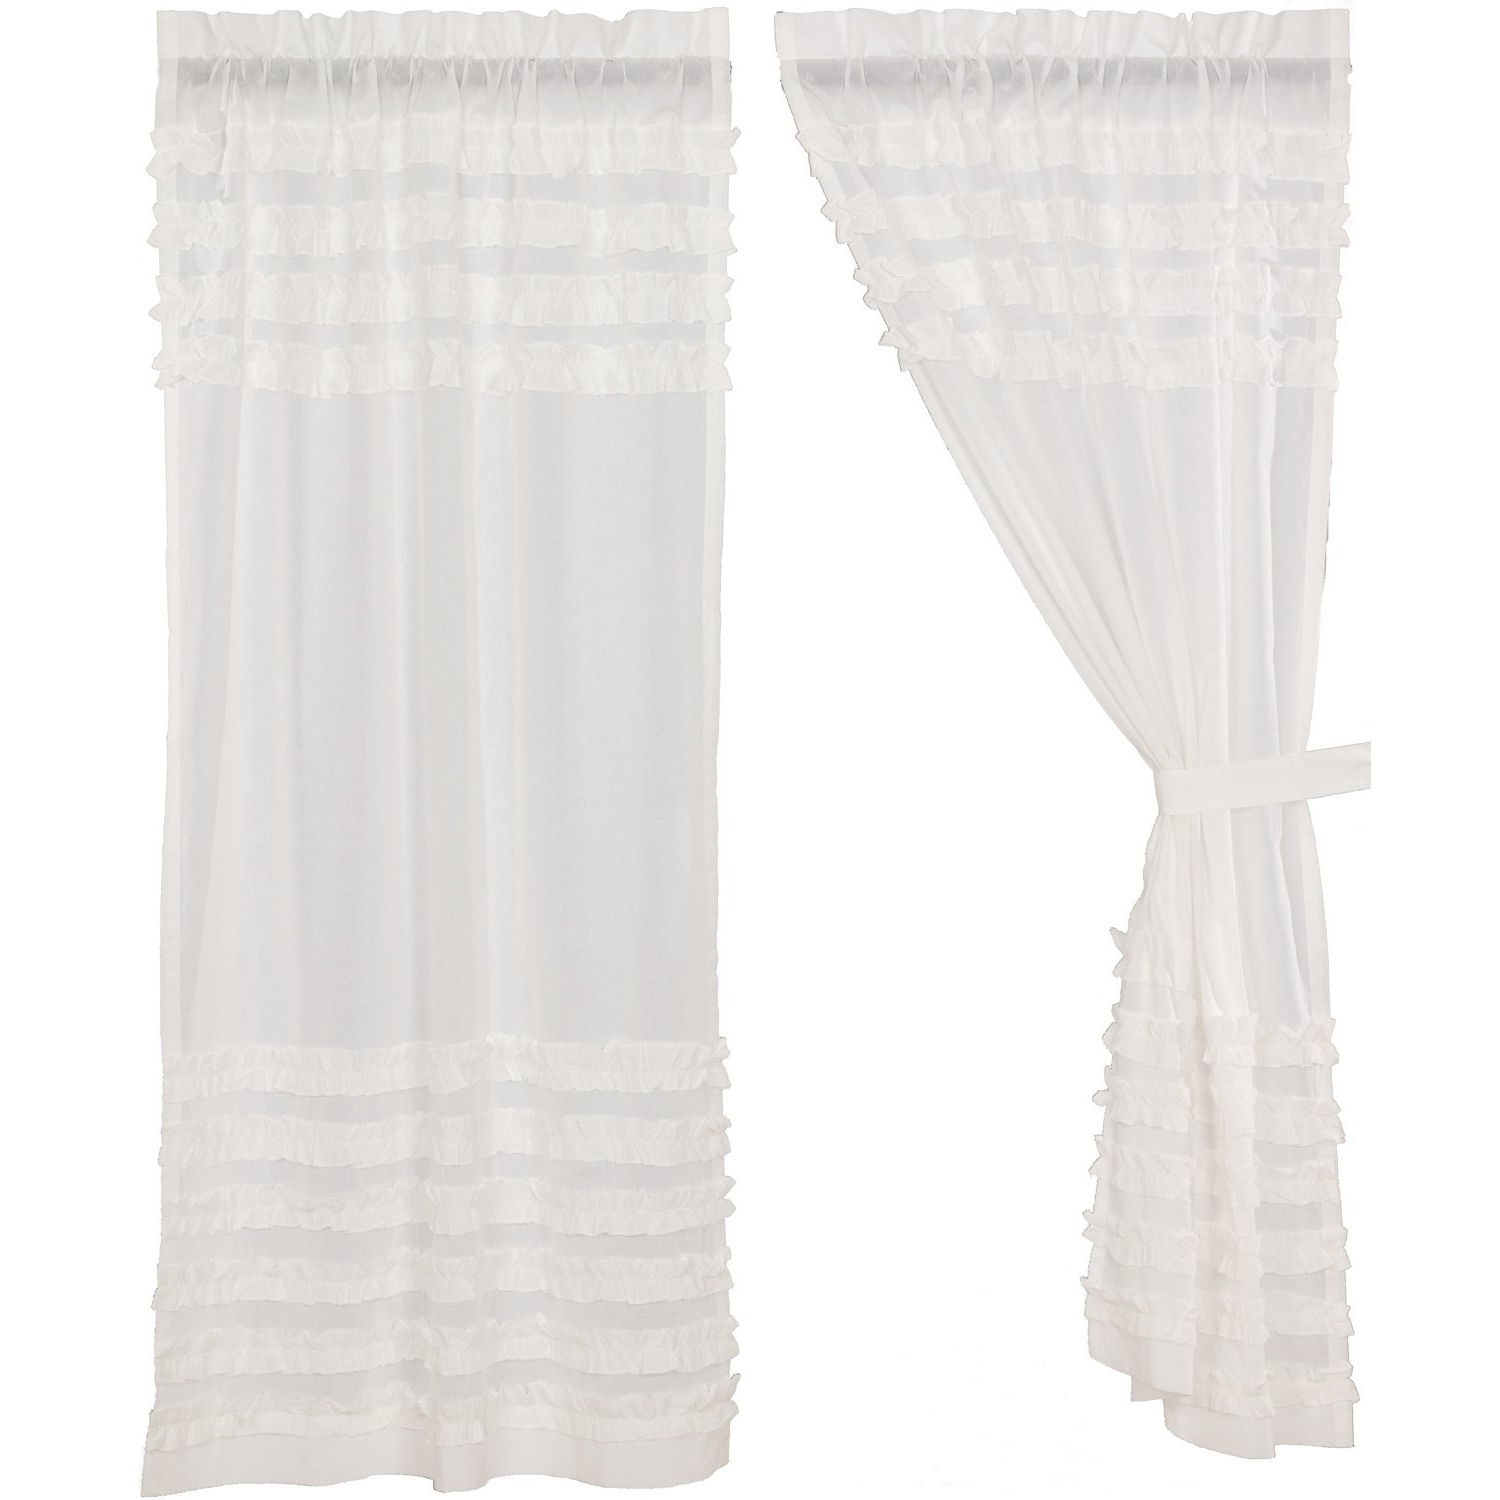 White Ruffled Sheer Petticoat Tier Pairs Pertaining To Most Up To Date White Farmhouse Curtains Vhc White Ruffled Sheer Petticoat Panel Pair Rod Pocket Cotton Solid Color Ruched Ruffle Sheer (View 4 of 20)